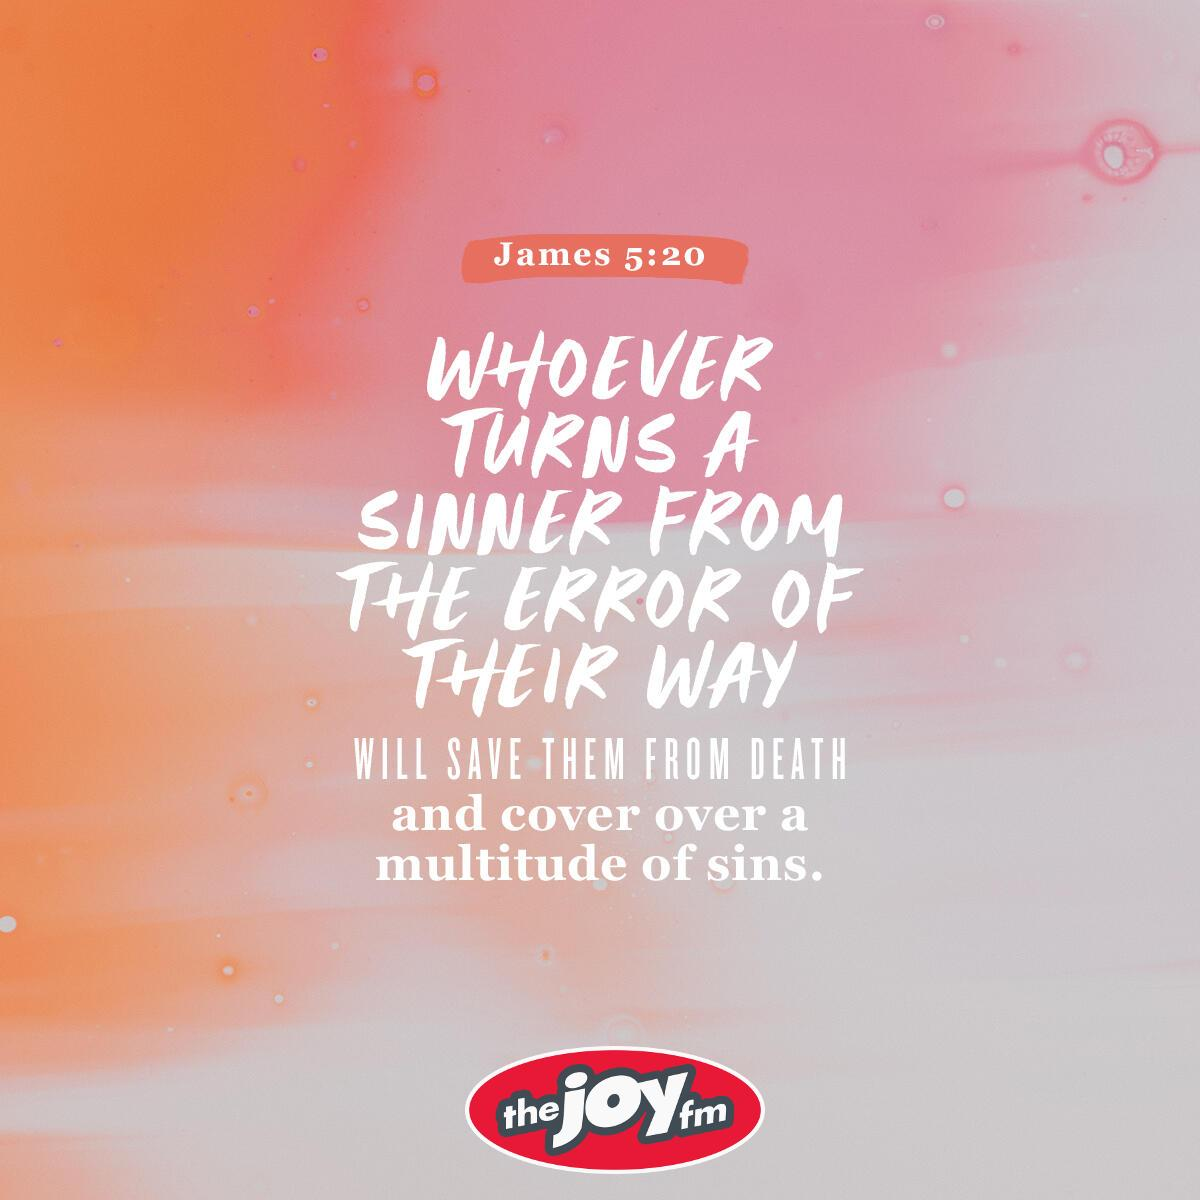 James 5:20 - Verse of the Day